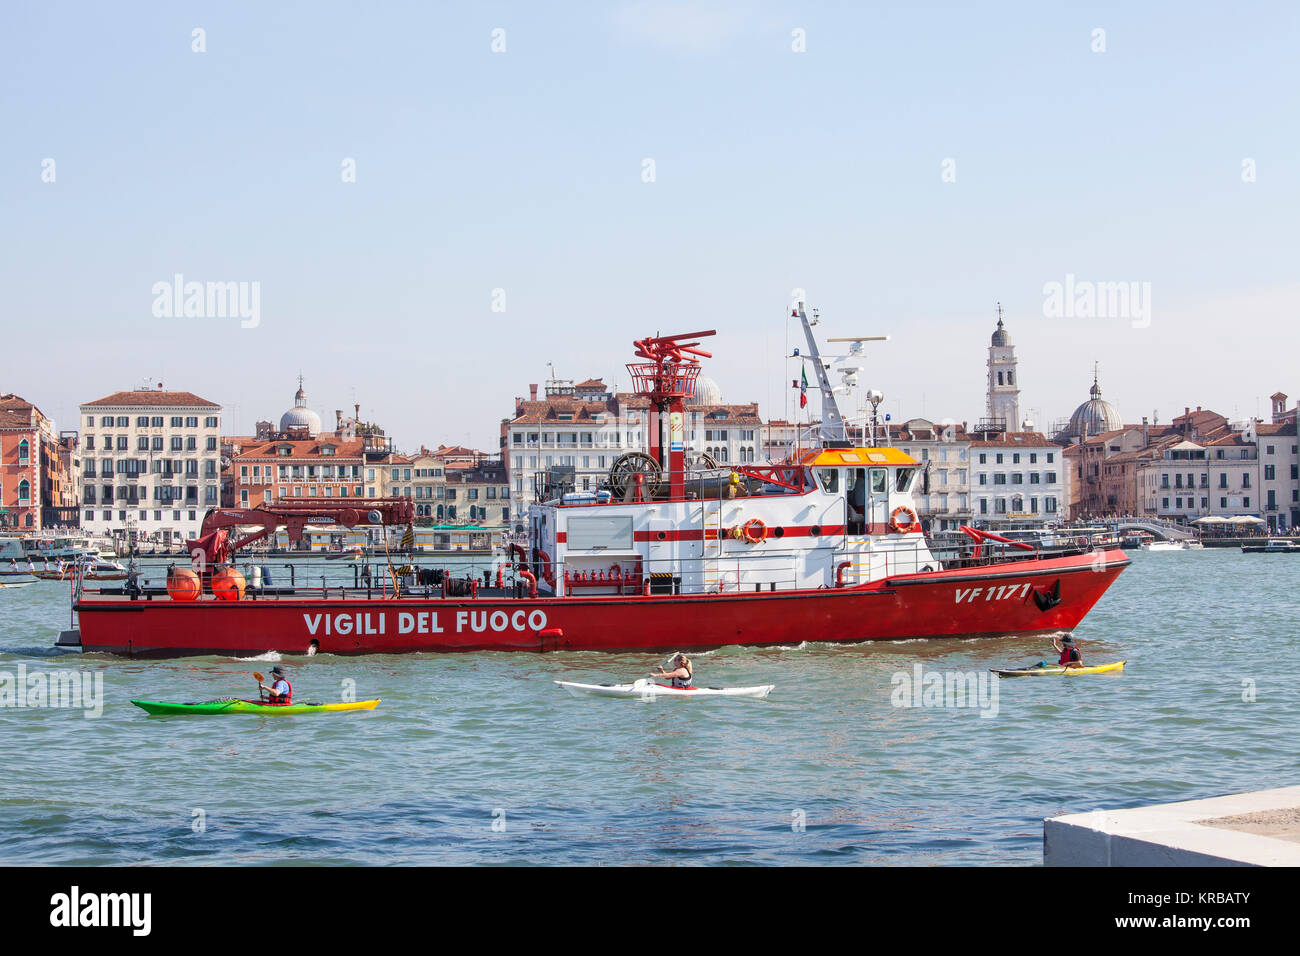 Red Vigili del Fuoco, or firebrigade,  fire tender in Basino San Marco, Venice, Italy with kayakers passing by and - Stock Image